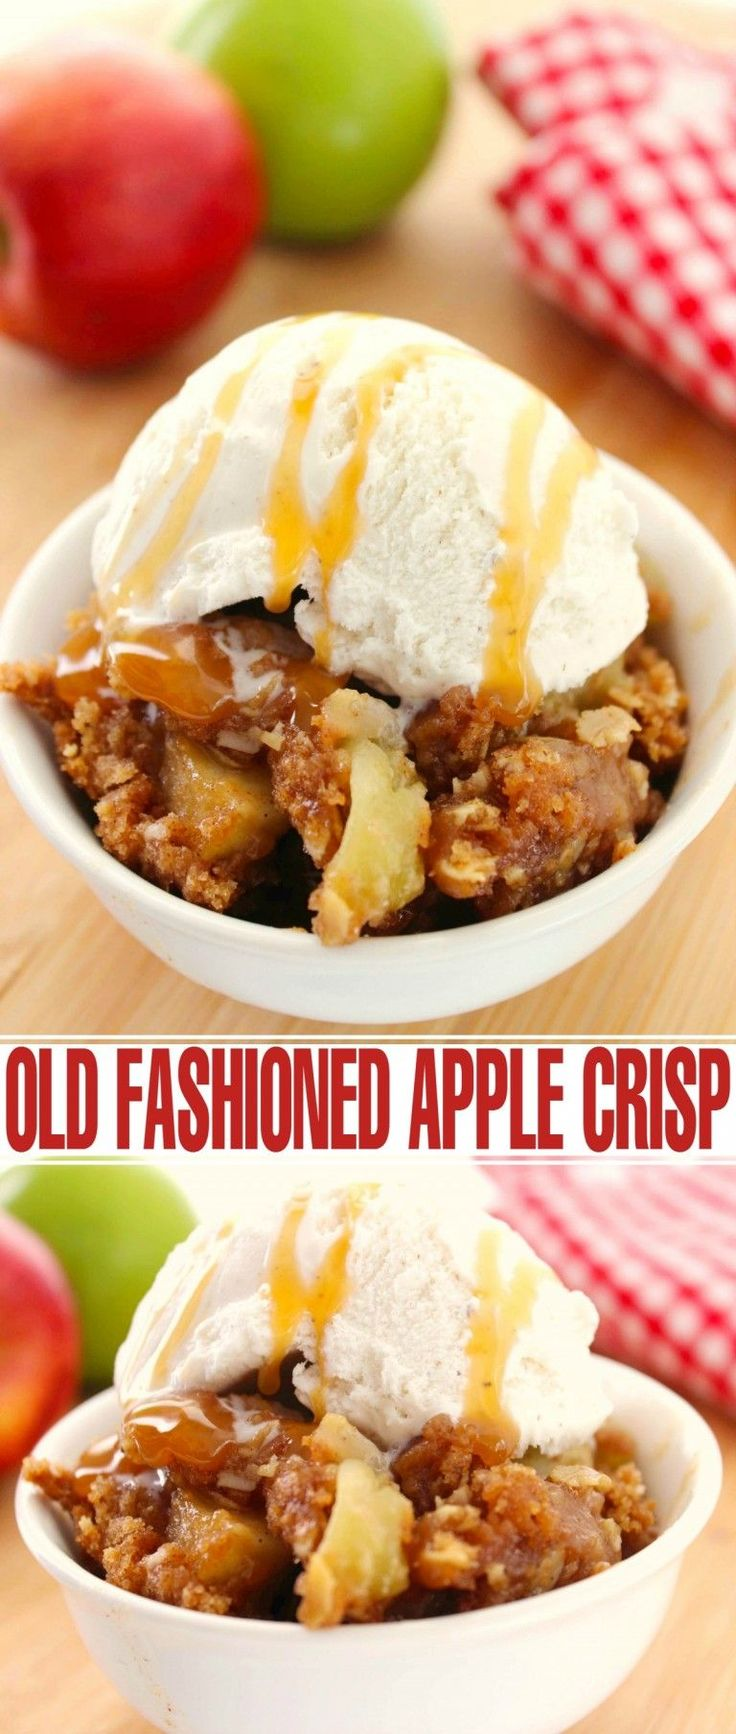 This Old Fashioned Apple Crisp recipe is definitely the best of the best.  Sweet slightly spiced apples topped with an amazing crumble - just like your Grandma always made!